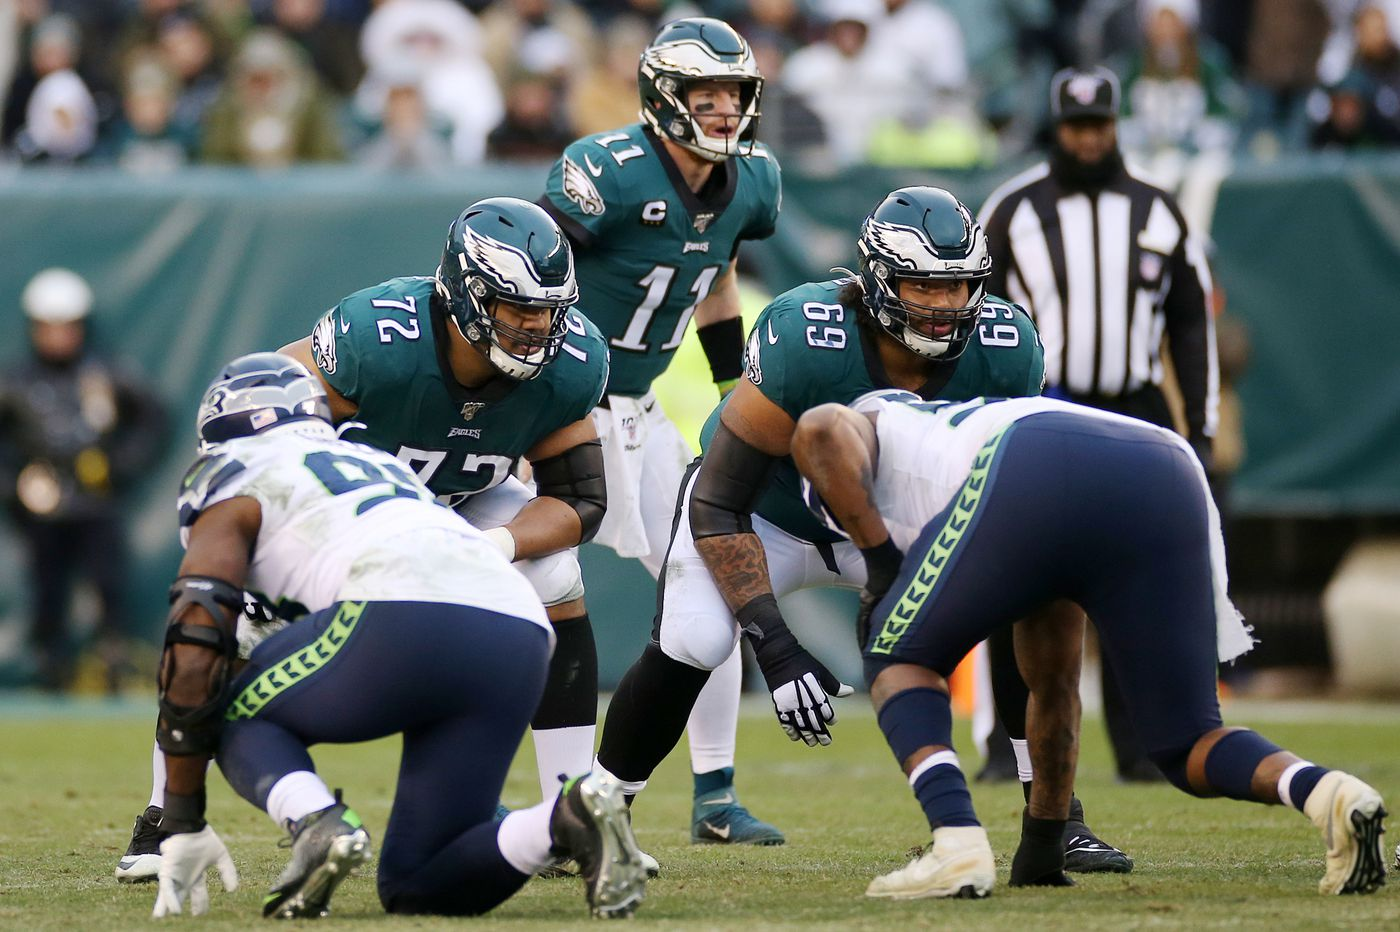 Eagles' Lane Johnson is out; that means Matt Pryor gets his first start, at right guard